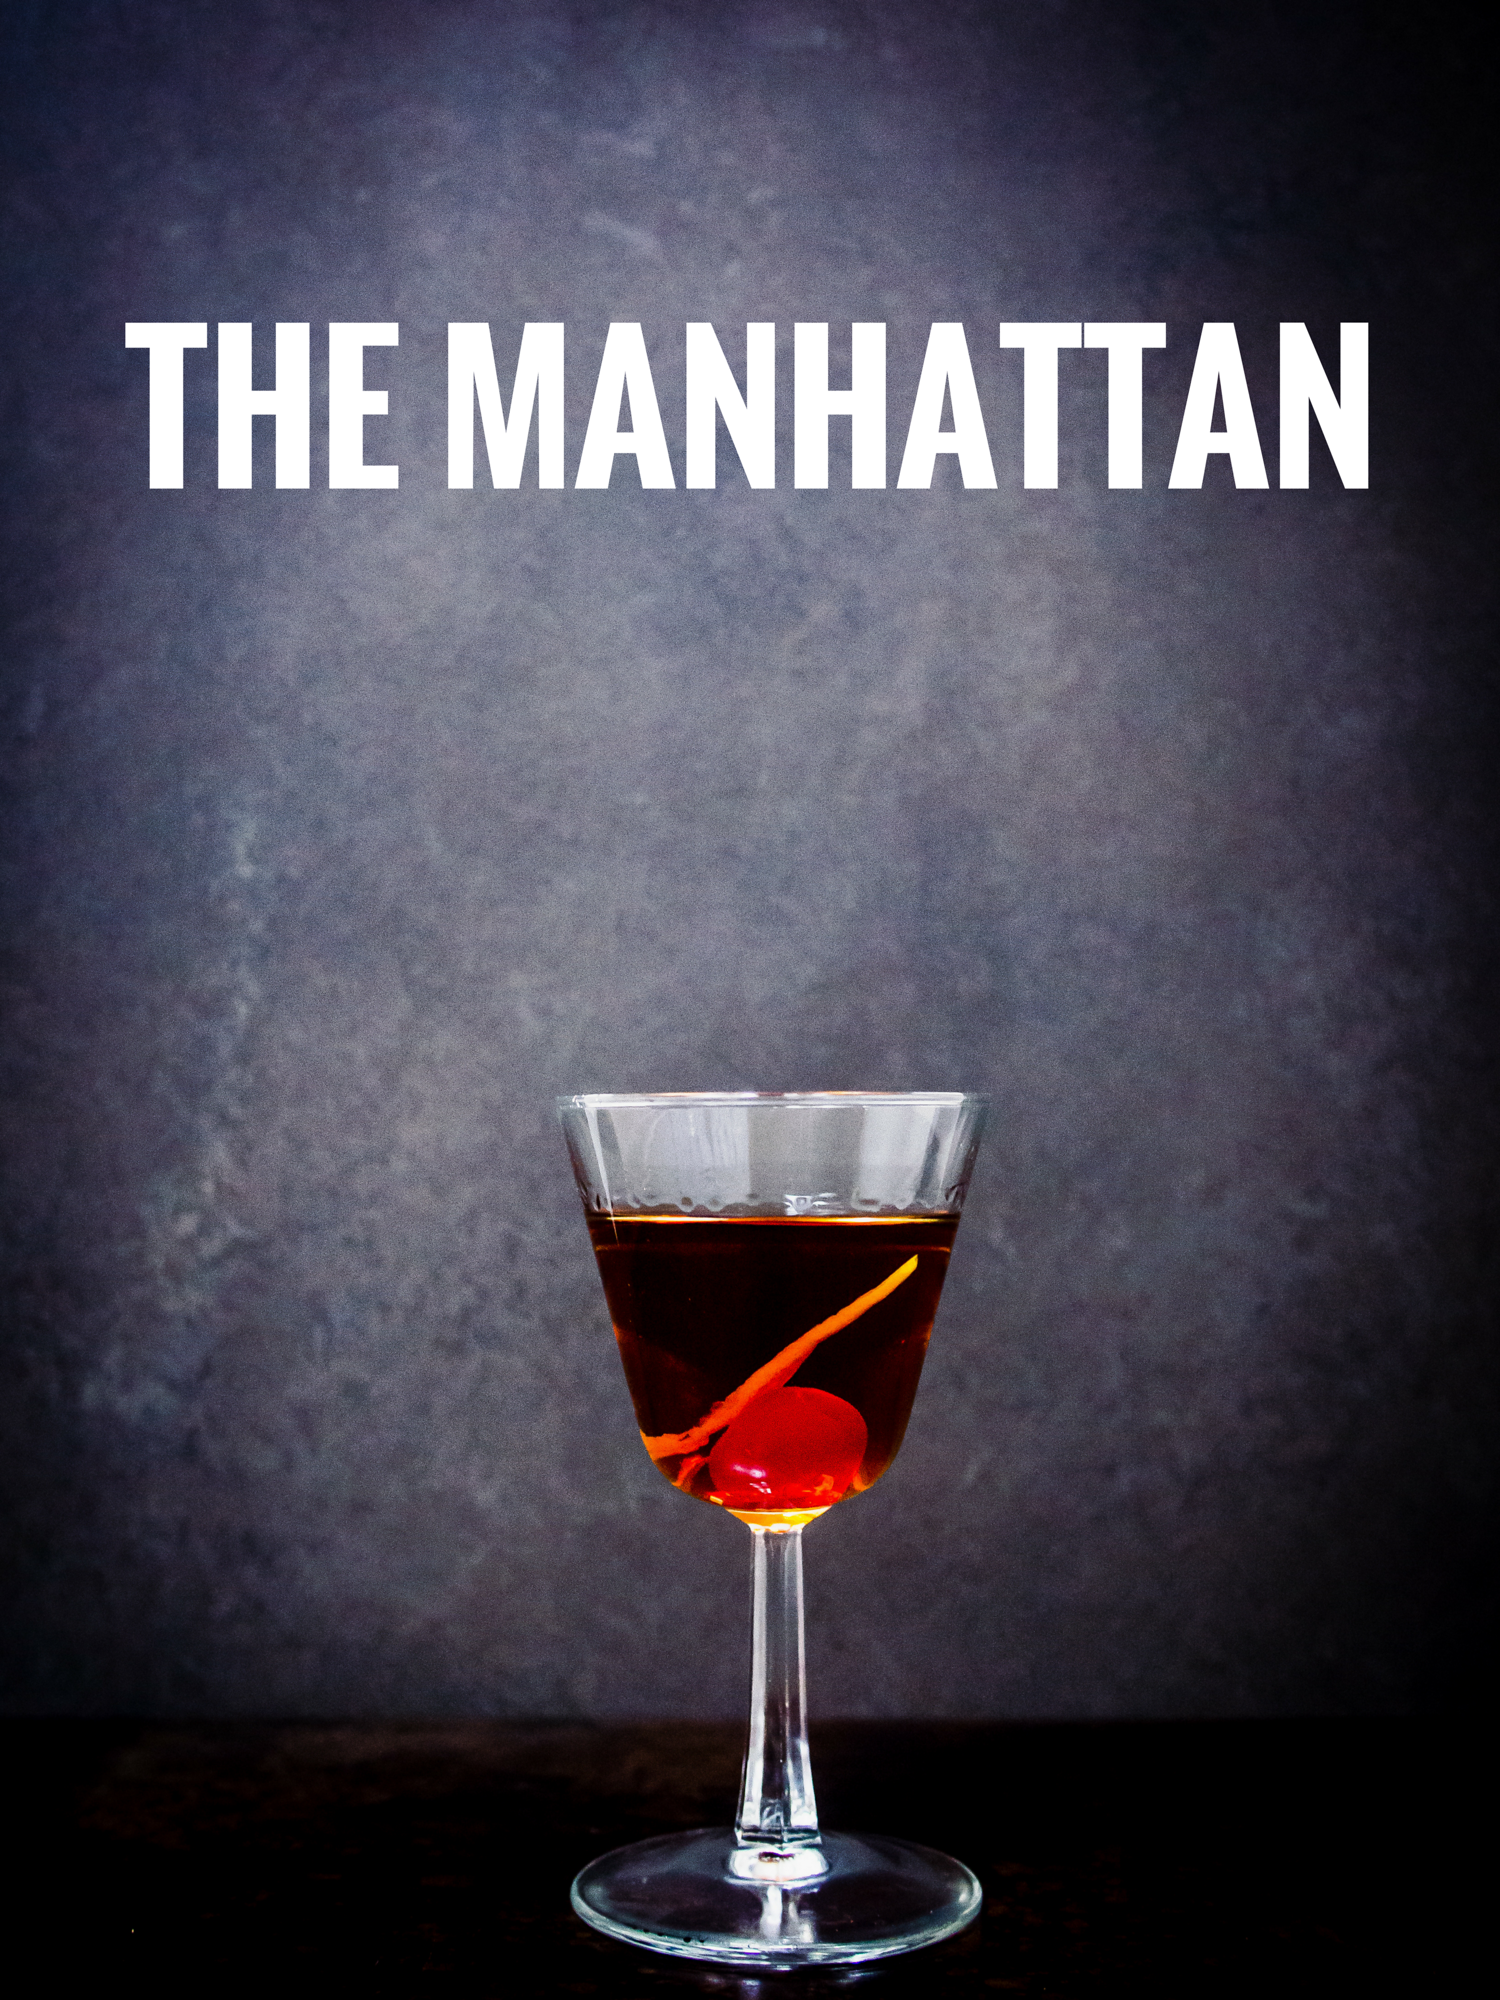 Classic whisky cocktails like this Manhattan are so easy to make. Here are the top 5 cocktails using whisky that every adult should know.